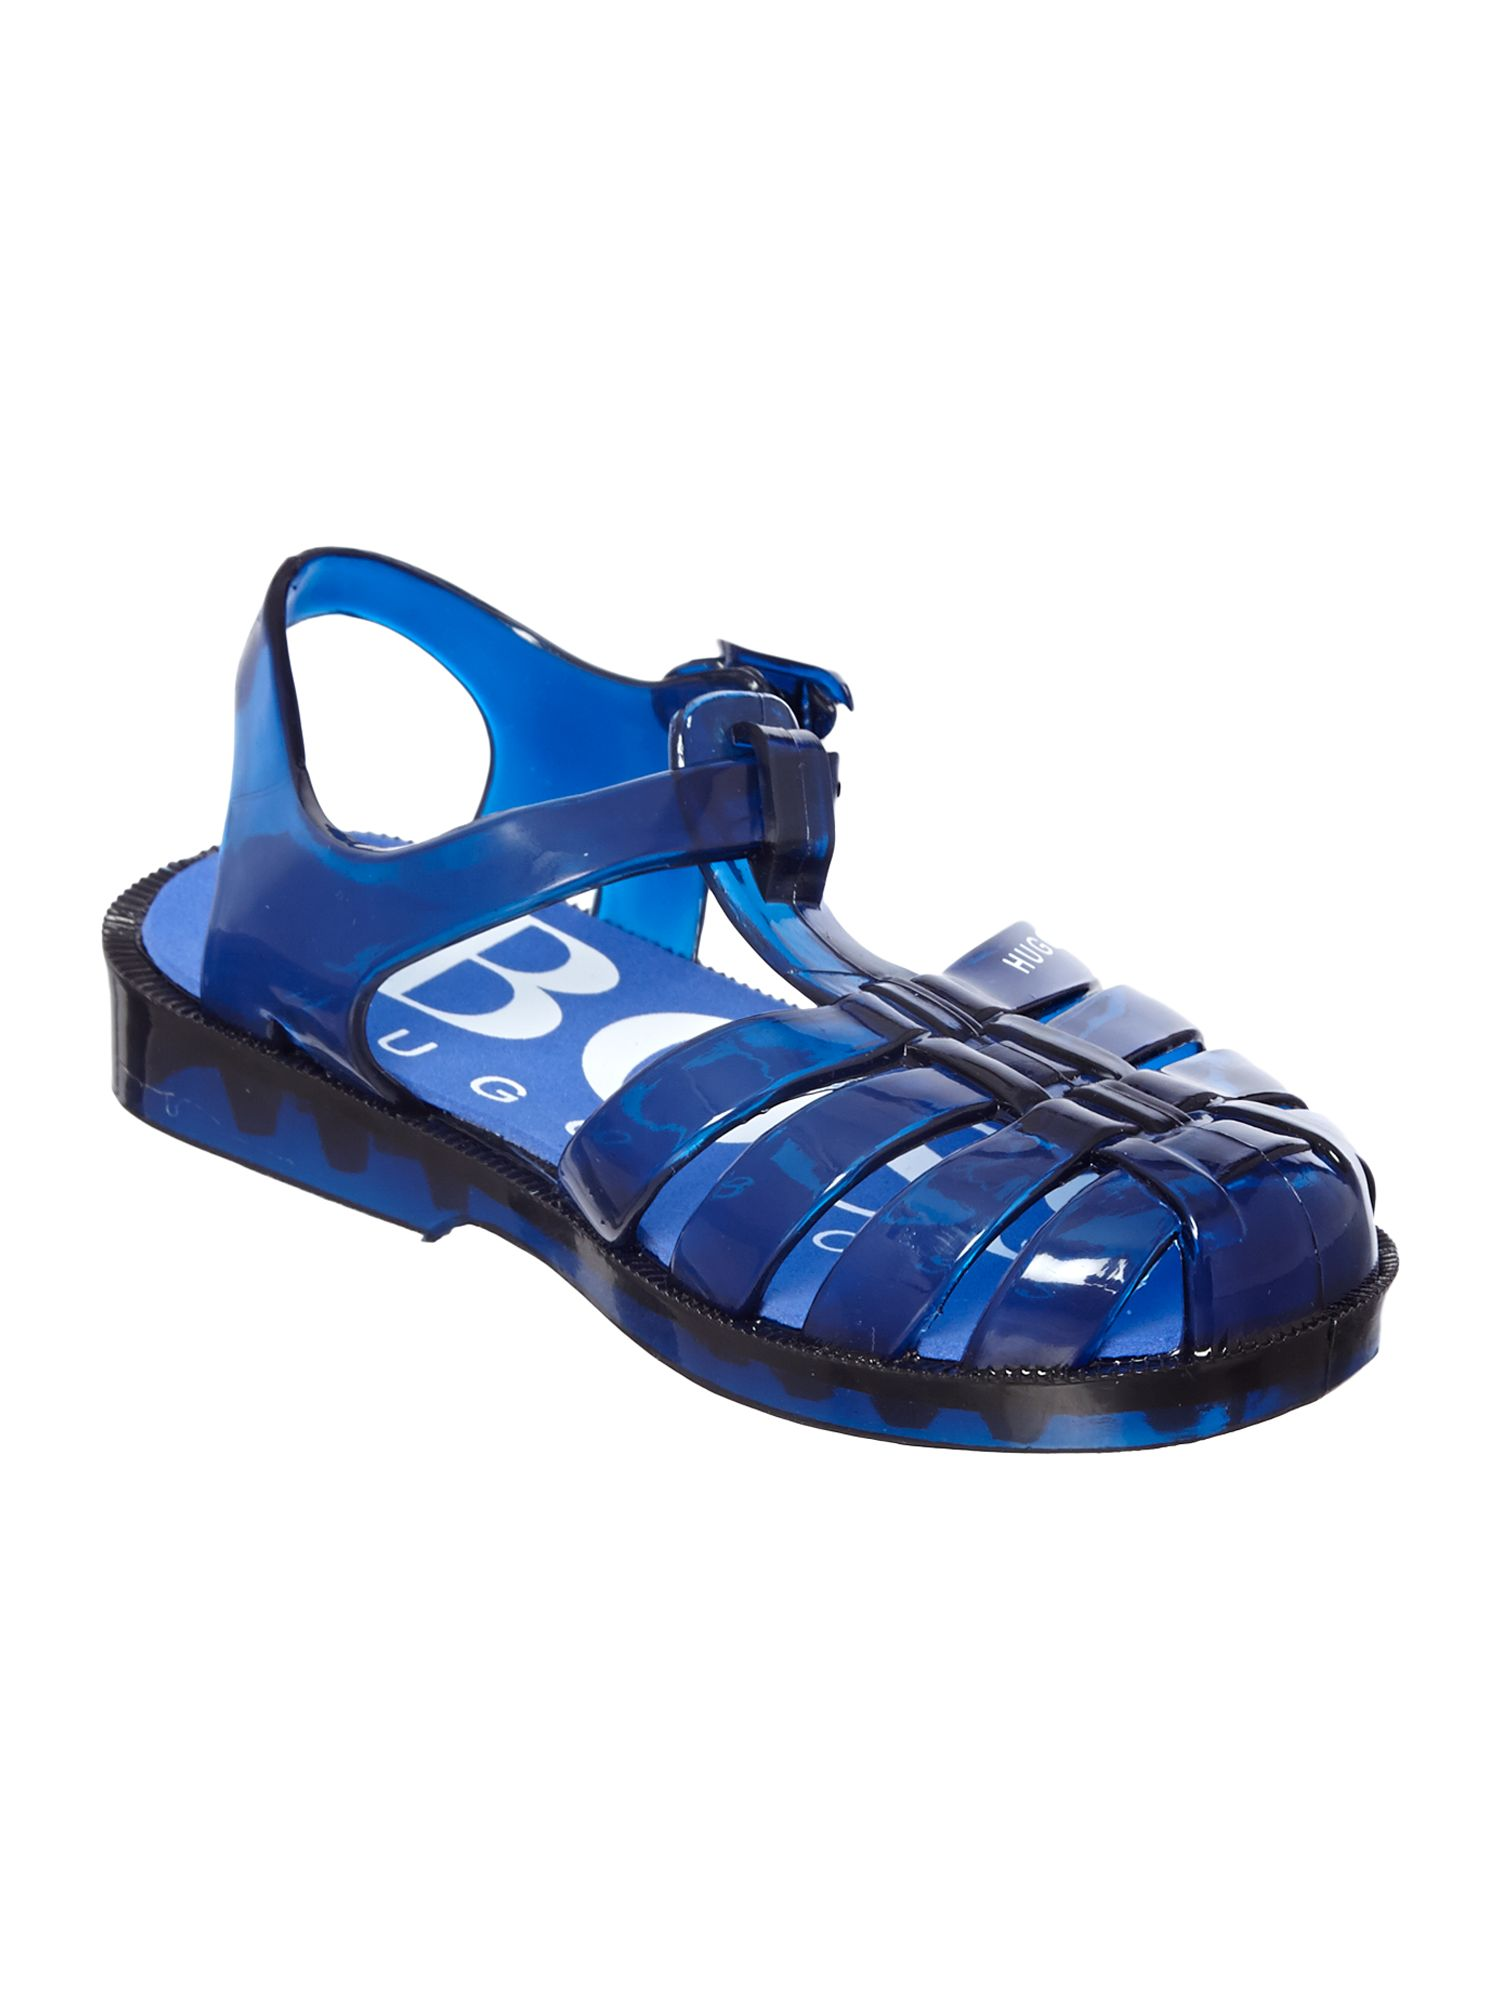 Boys jelly sandals